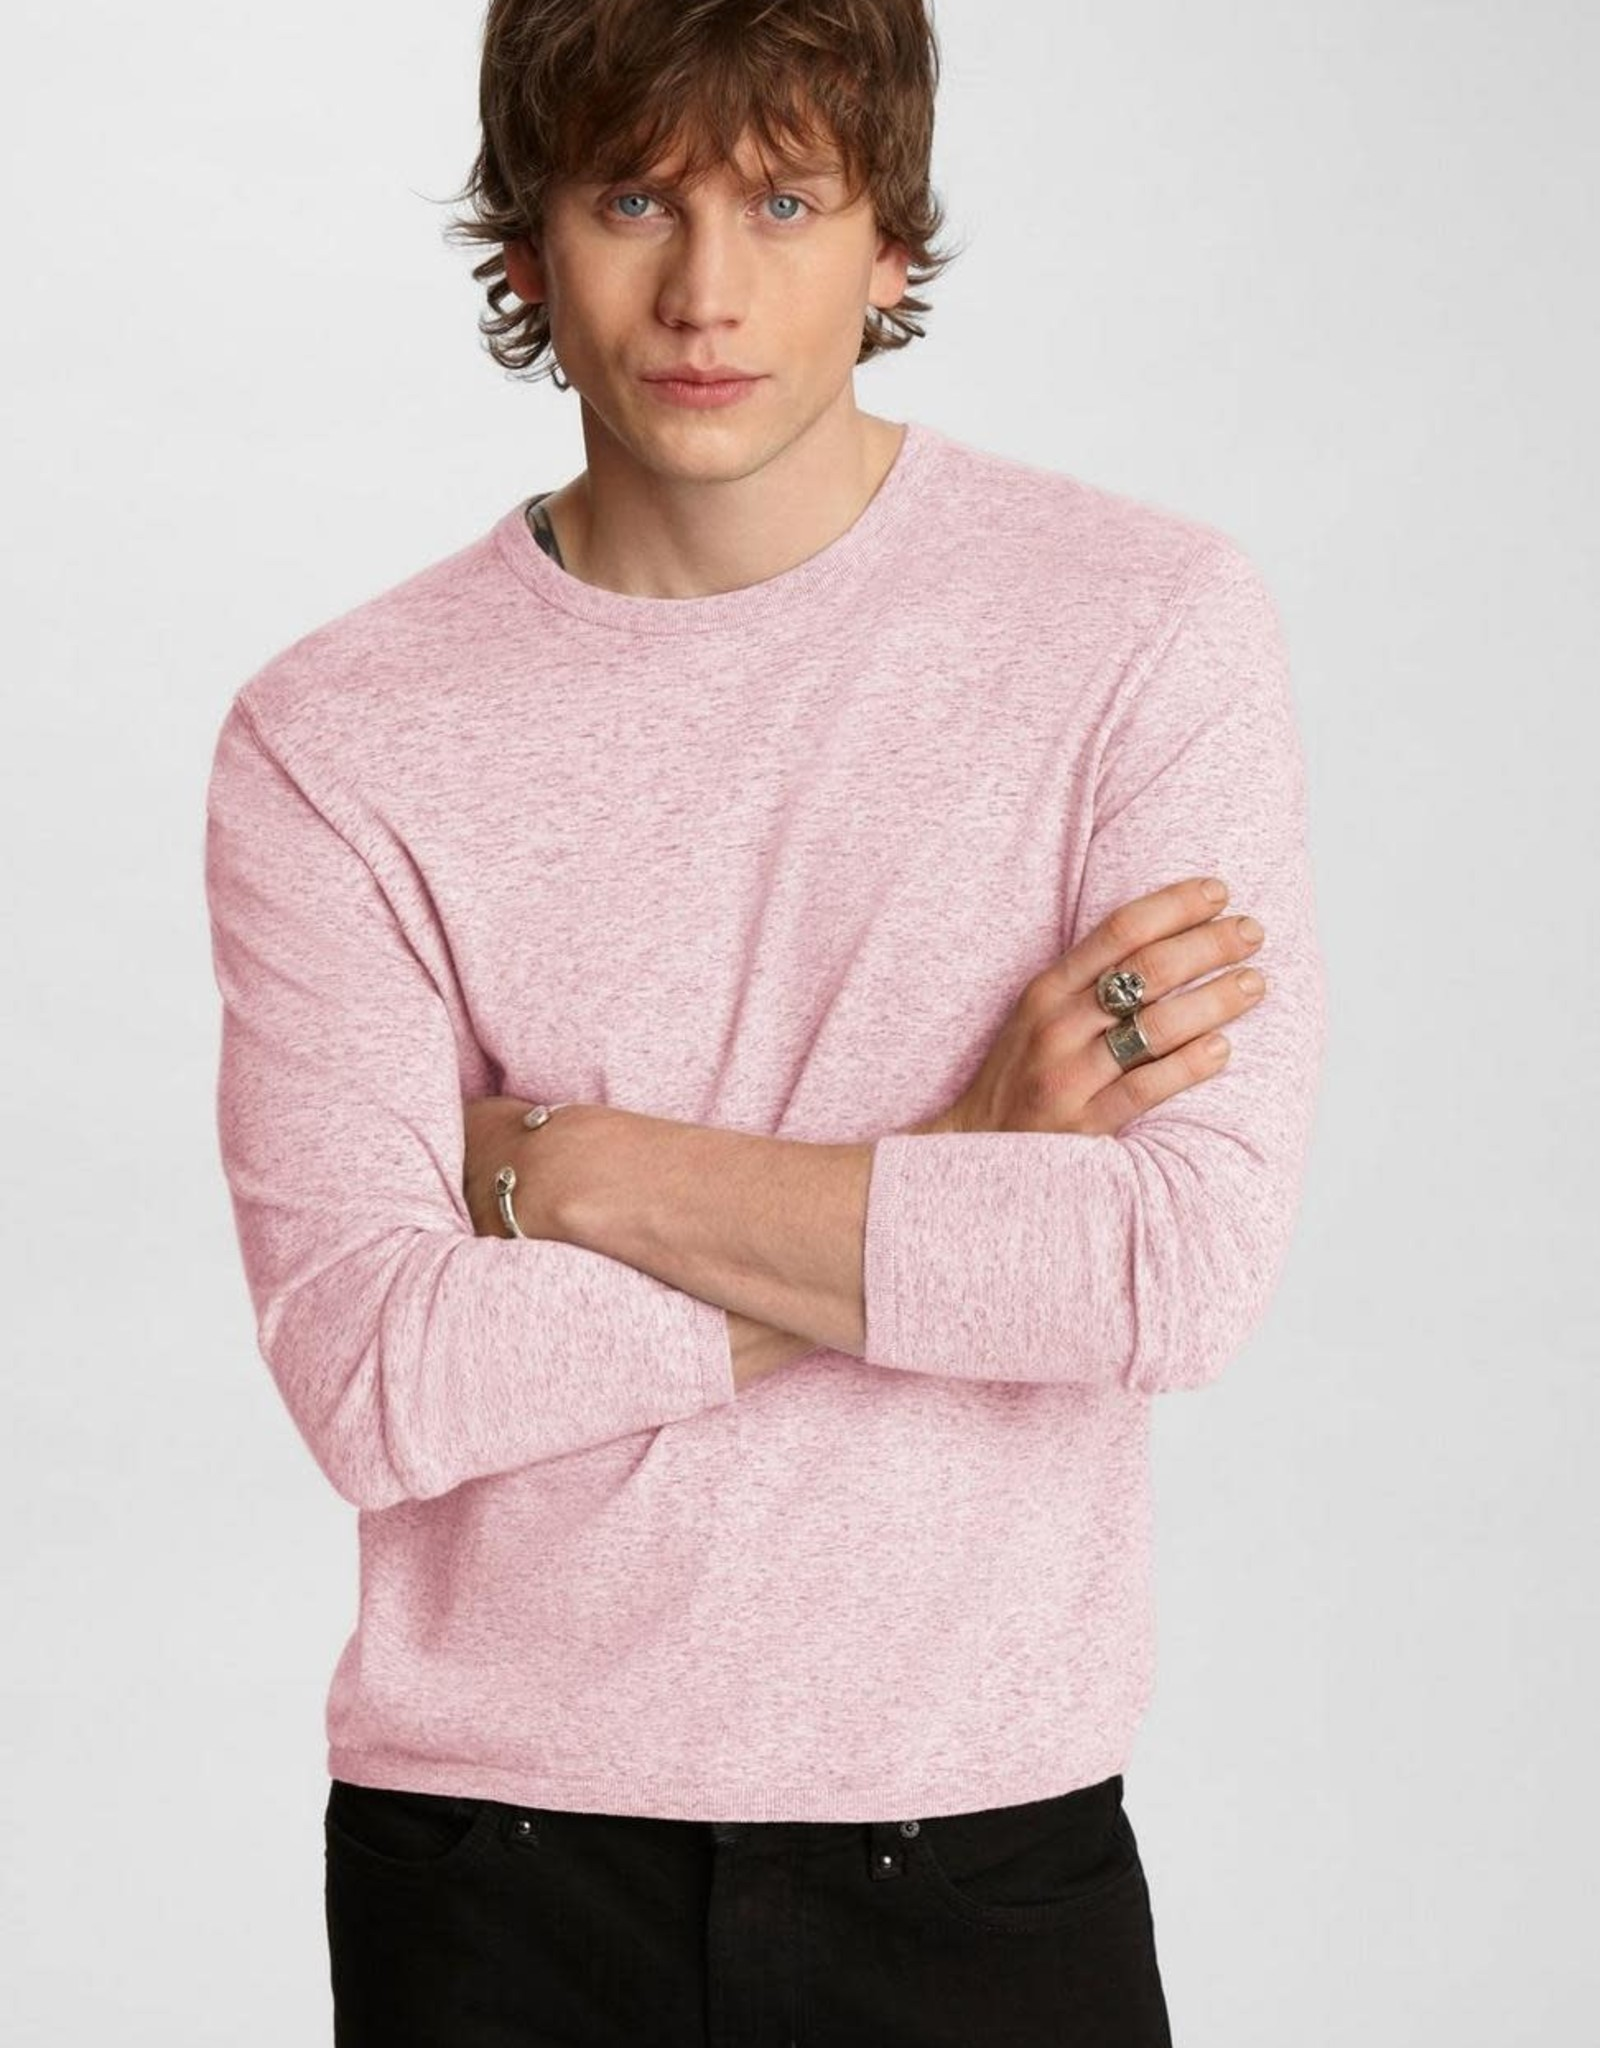 John Varvatos John Varvatos Huntington Crewneck Sweater